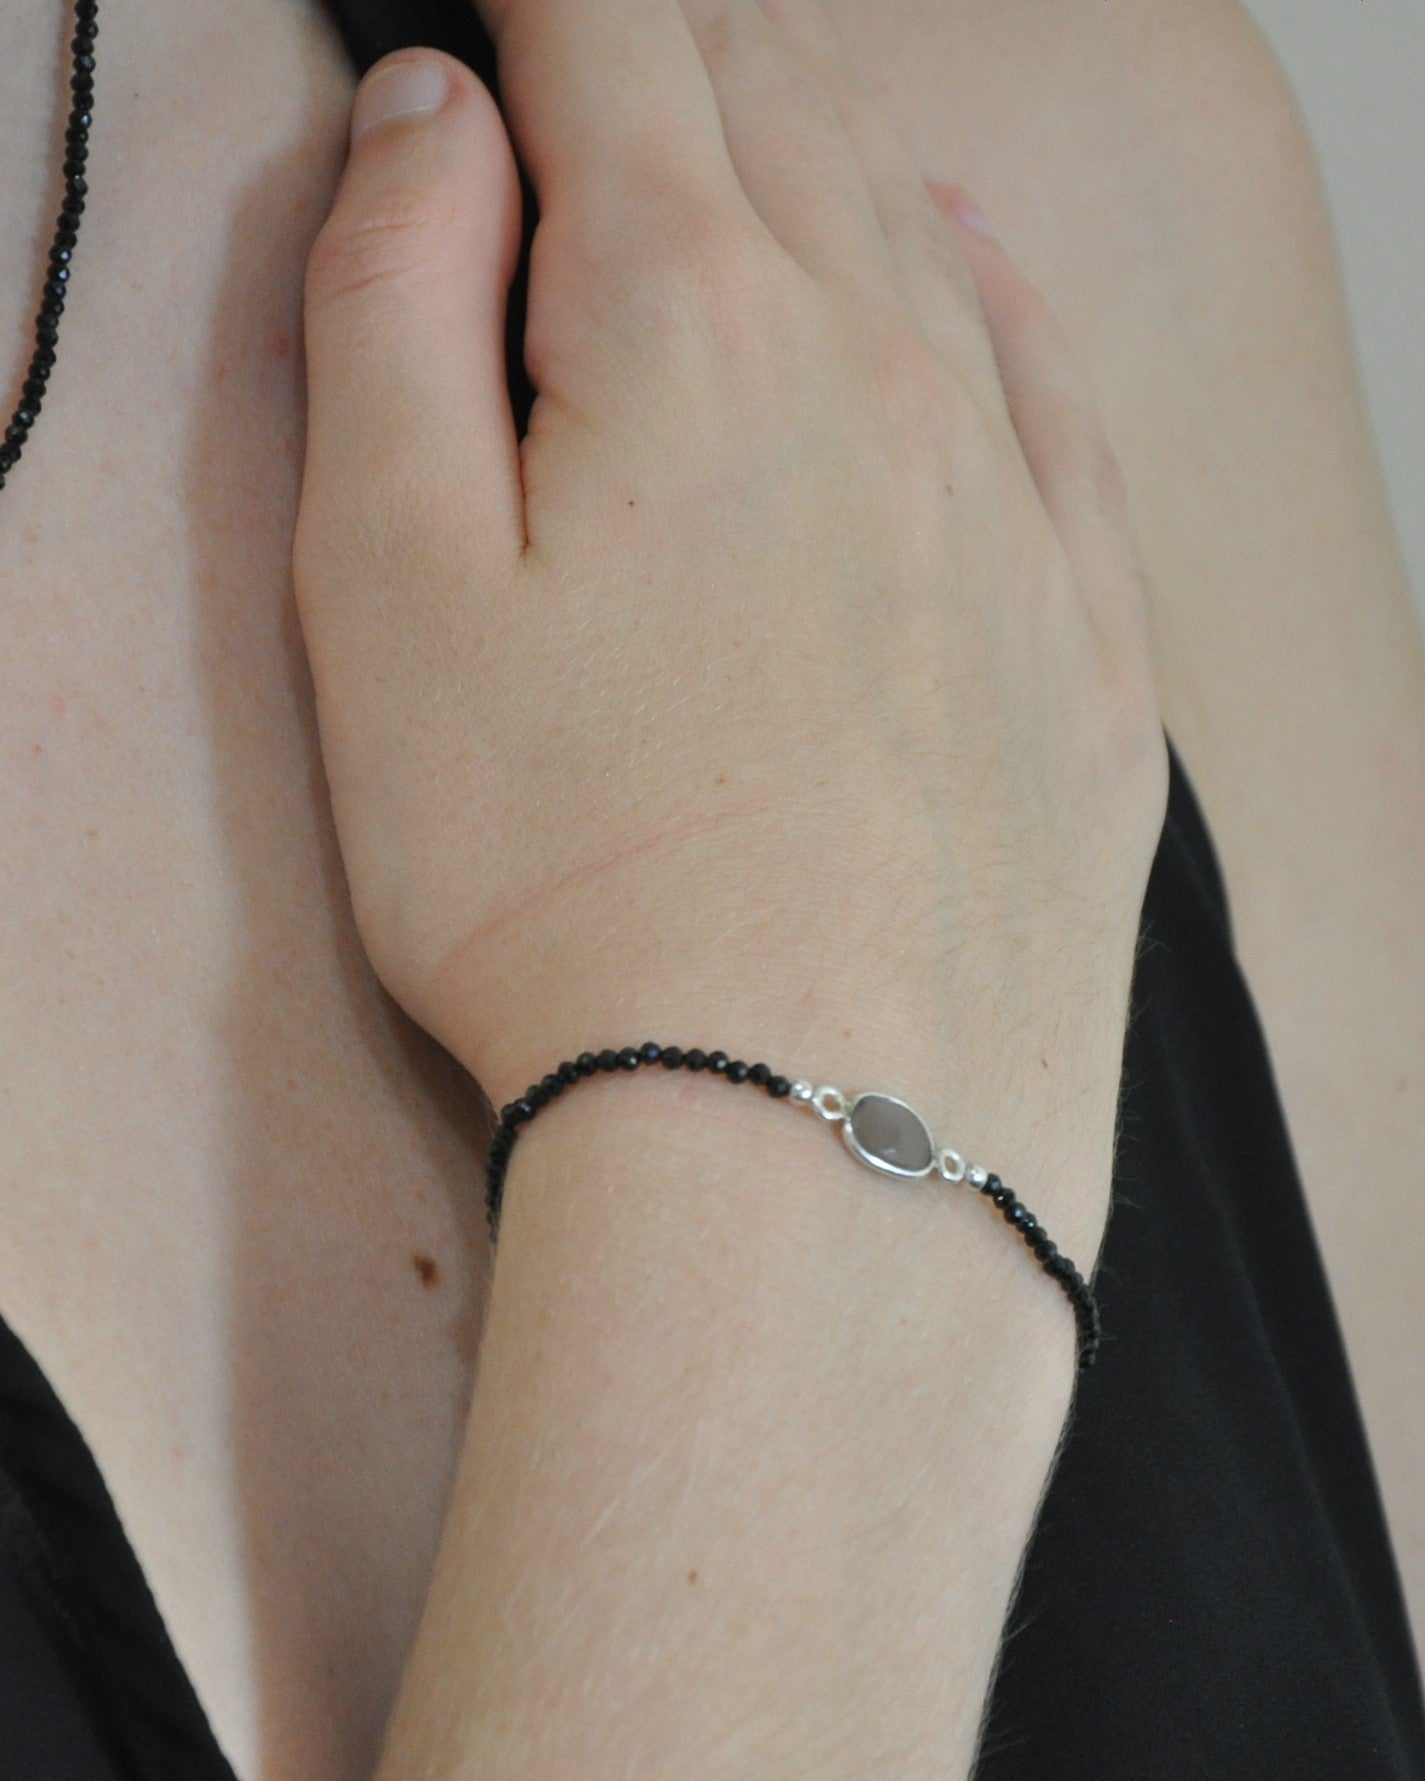 Empowered Black Spinel Bracelet - Confidence